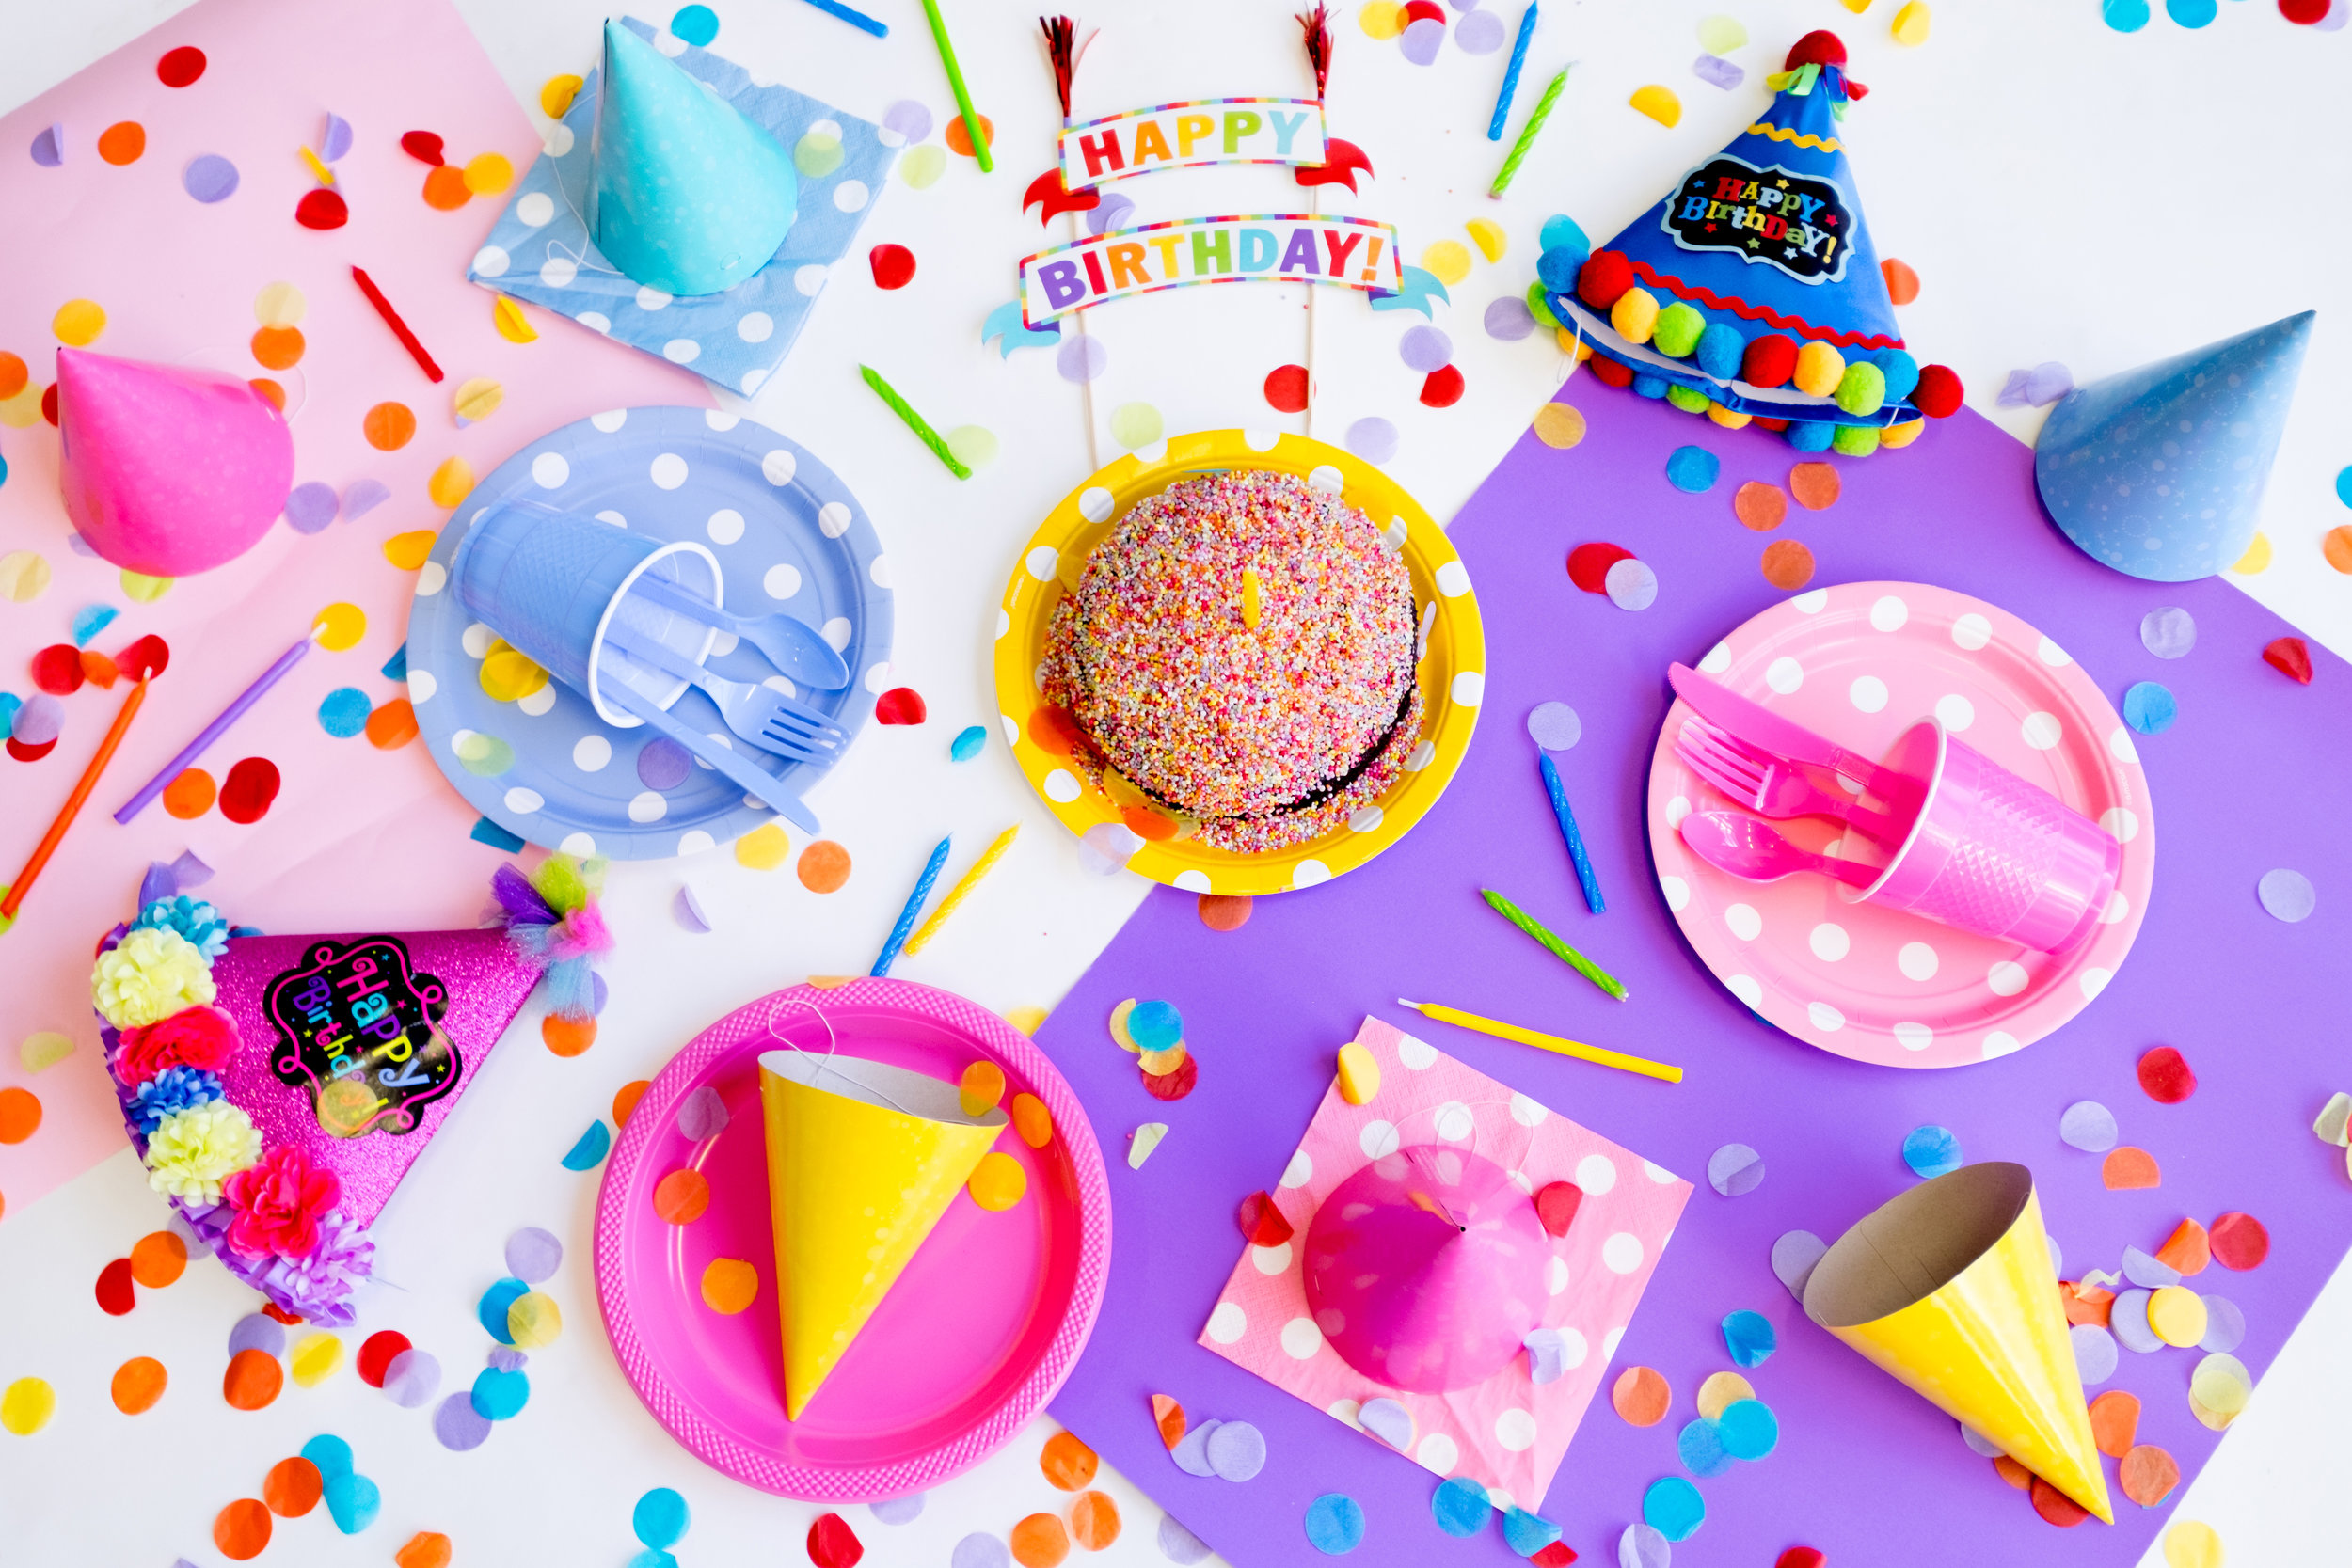 Table covered with birthday supplies